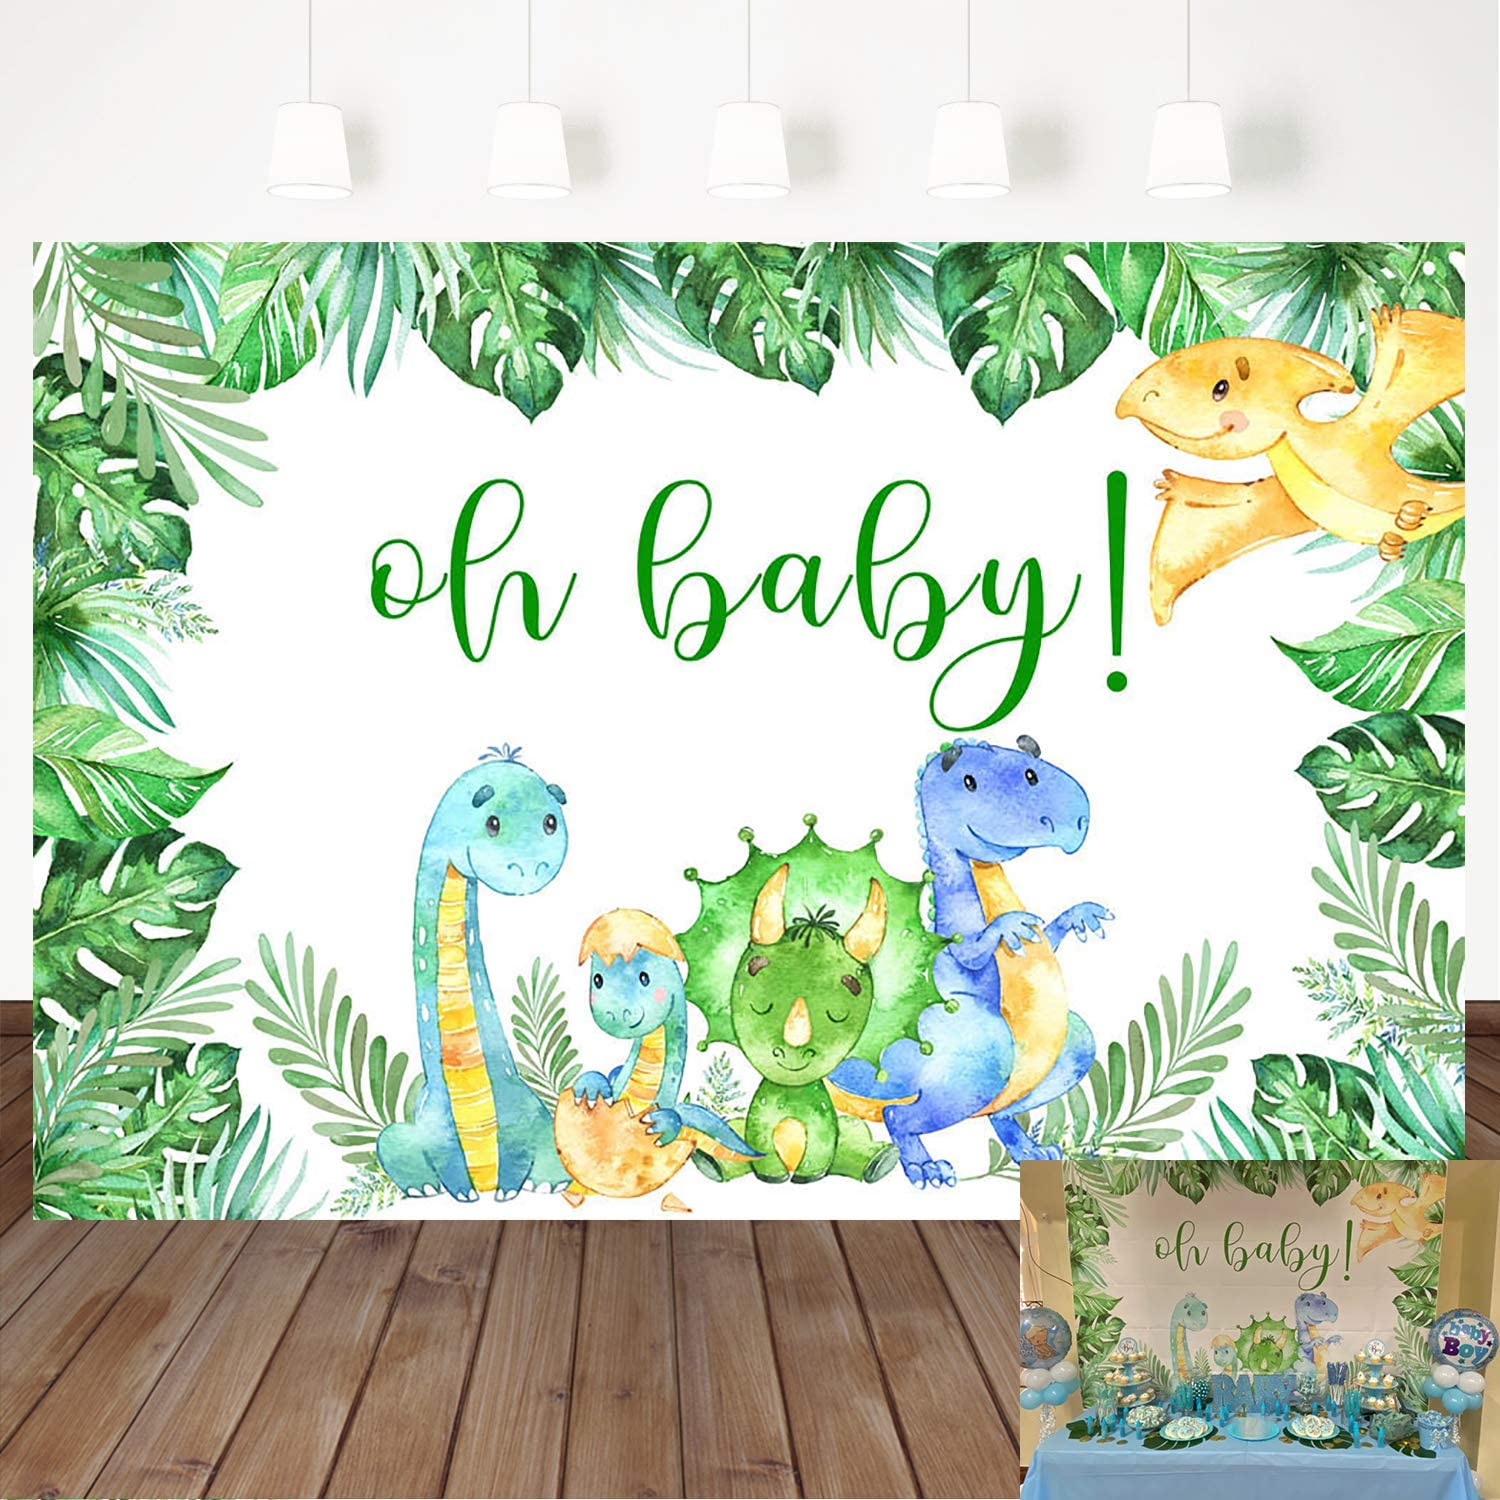 Mocsicka Dinosaur Backdrop Safari Jungle Wild Green Palm Leaves Dinosaur Party Photography Background 7×5ft Vinyl Oh Baby Birthday Party Decoration Backdrops